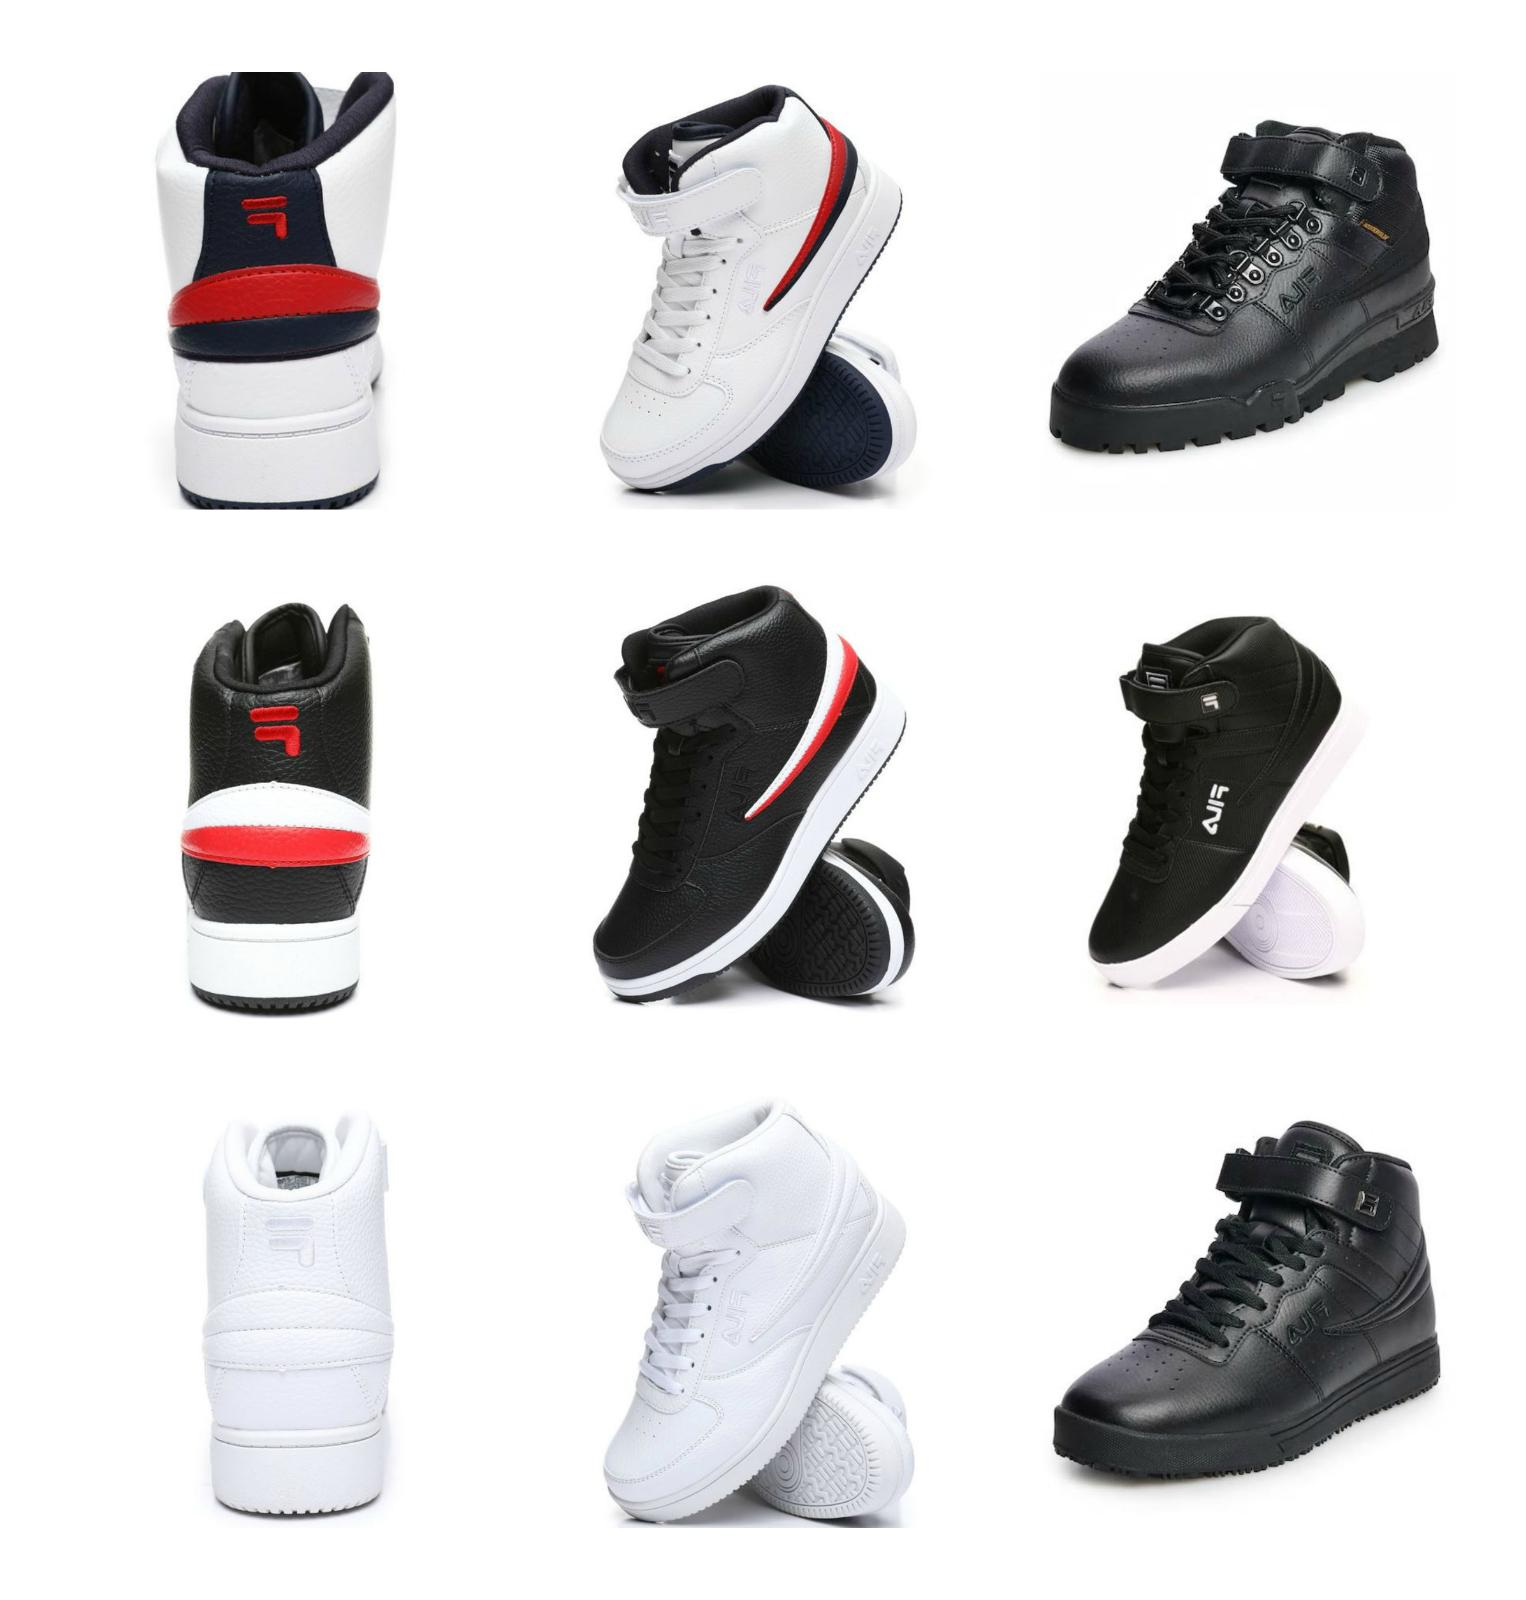 Mid Plus Suede Mid Athletic Shoes F13